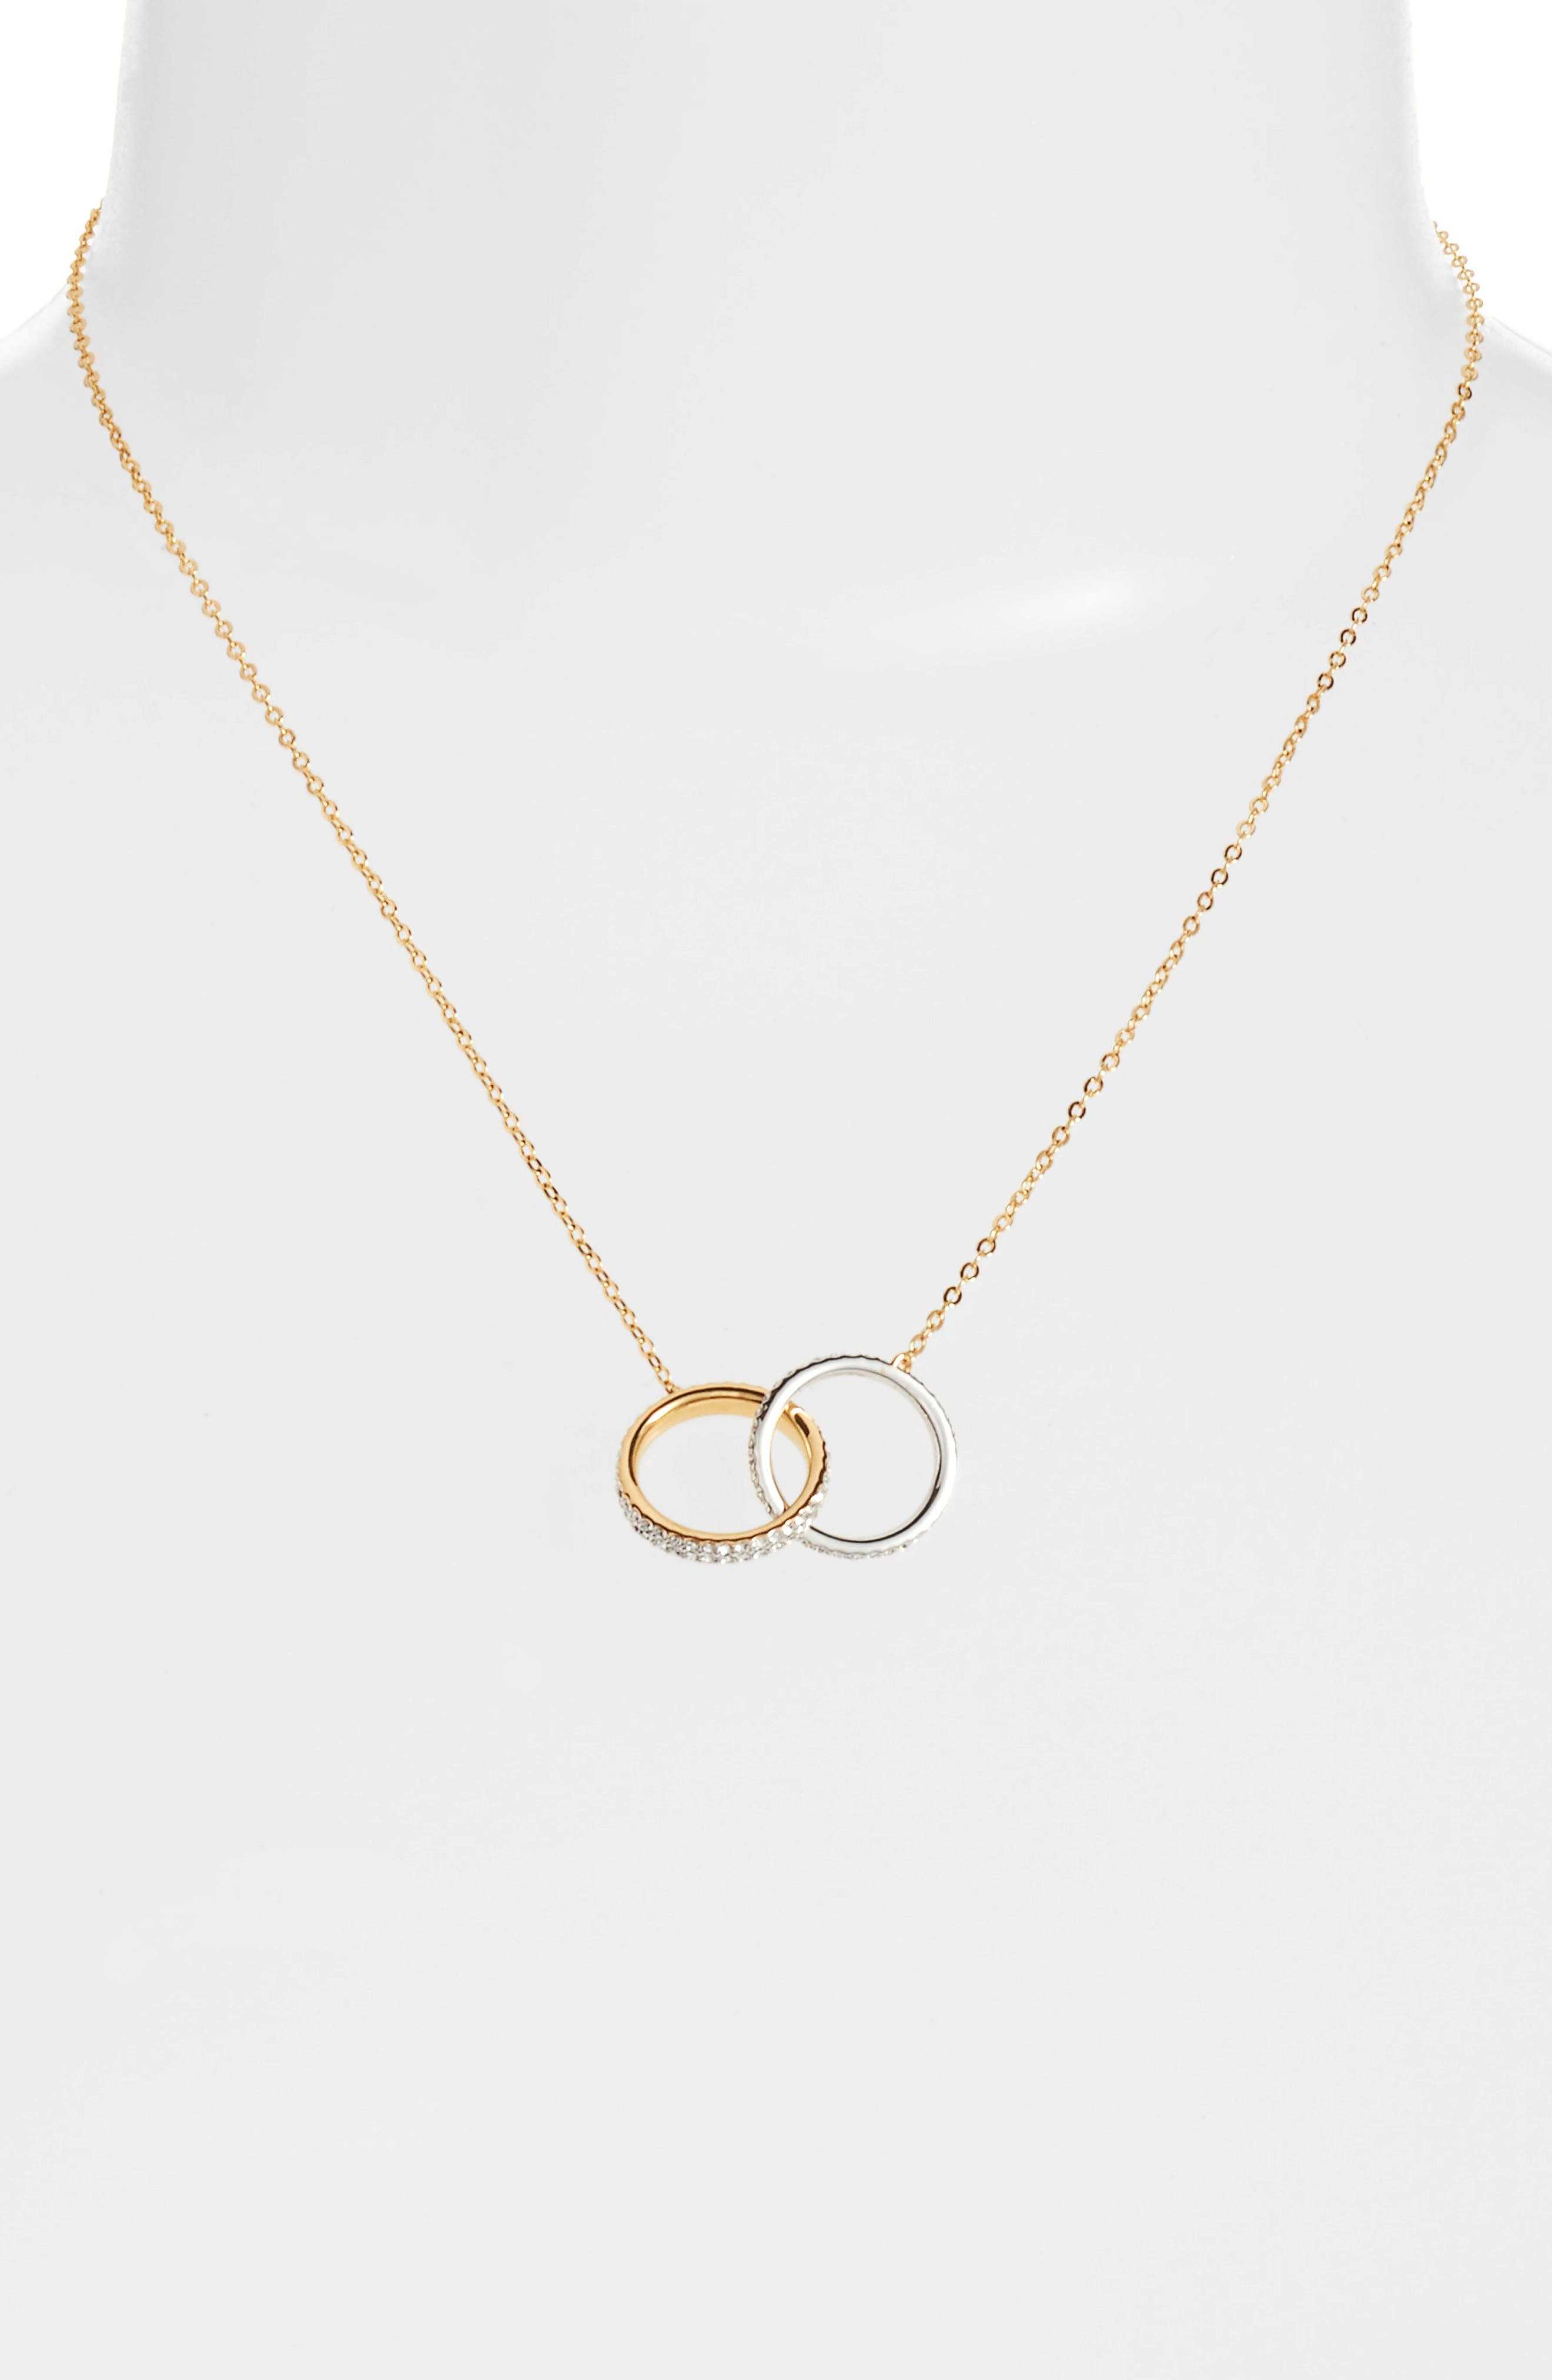 Trinity Double Link Pendant Necklace,                         Main,                         color, Gold / Silver